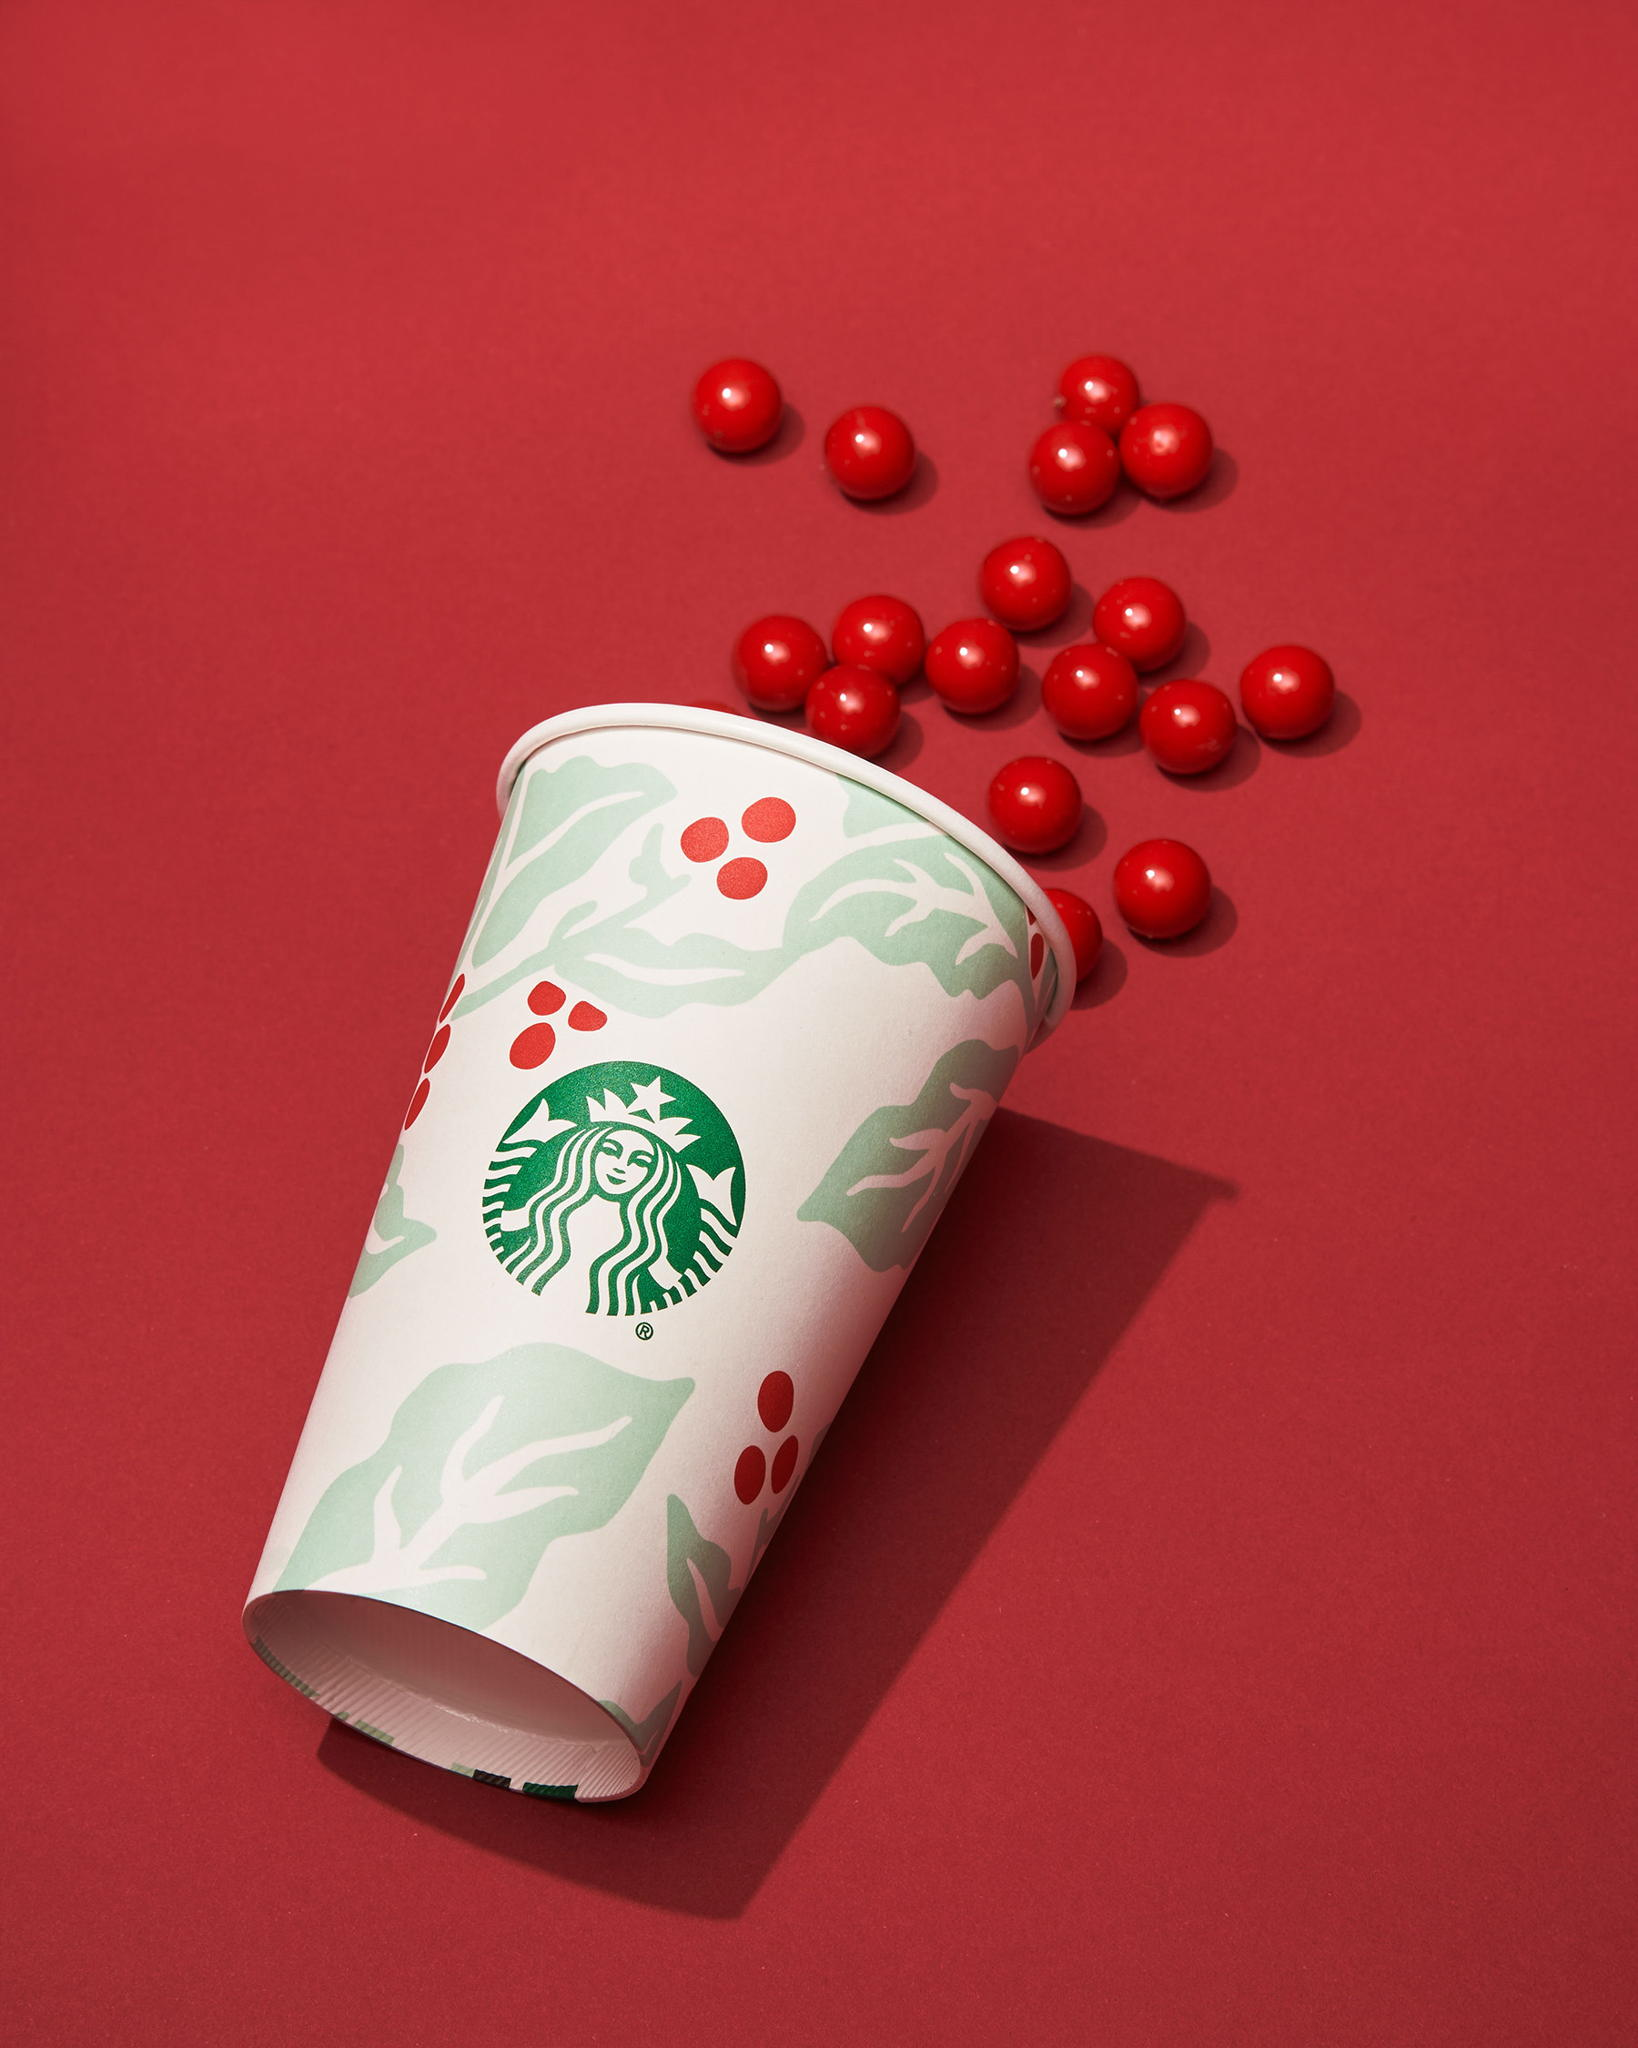 The_Dieline_Starbucks_Holiday-JStrutz-103118-0587_1.jpg